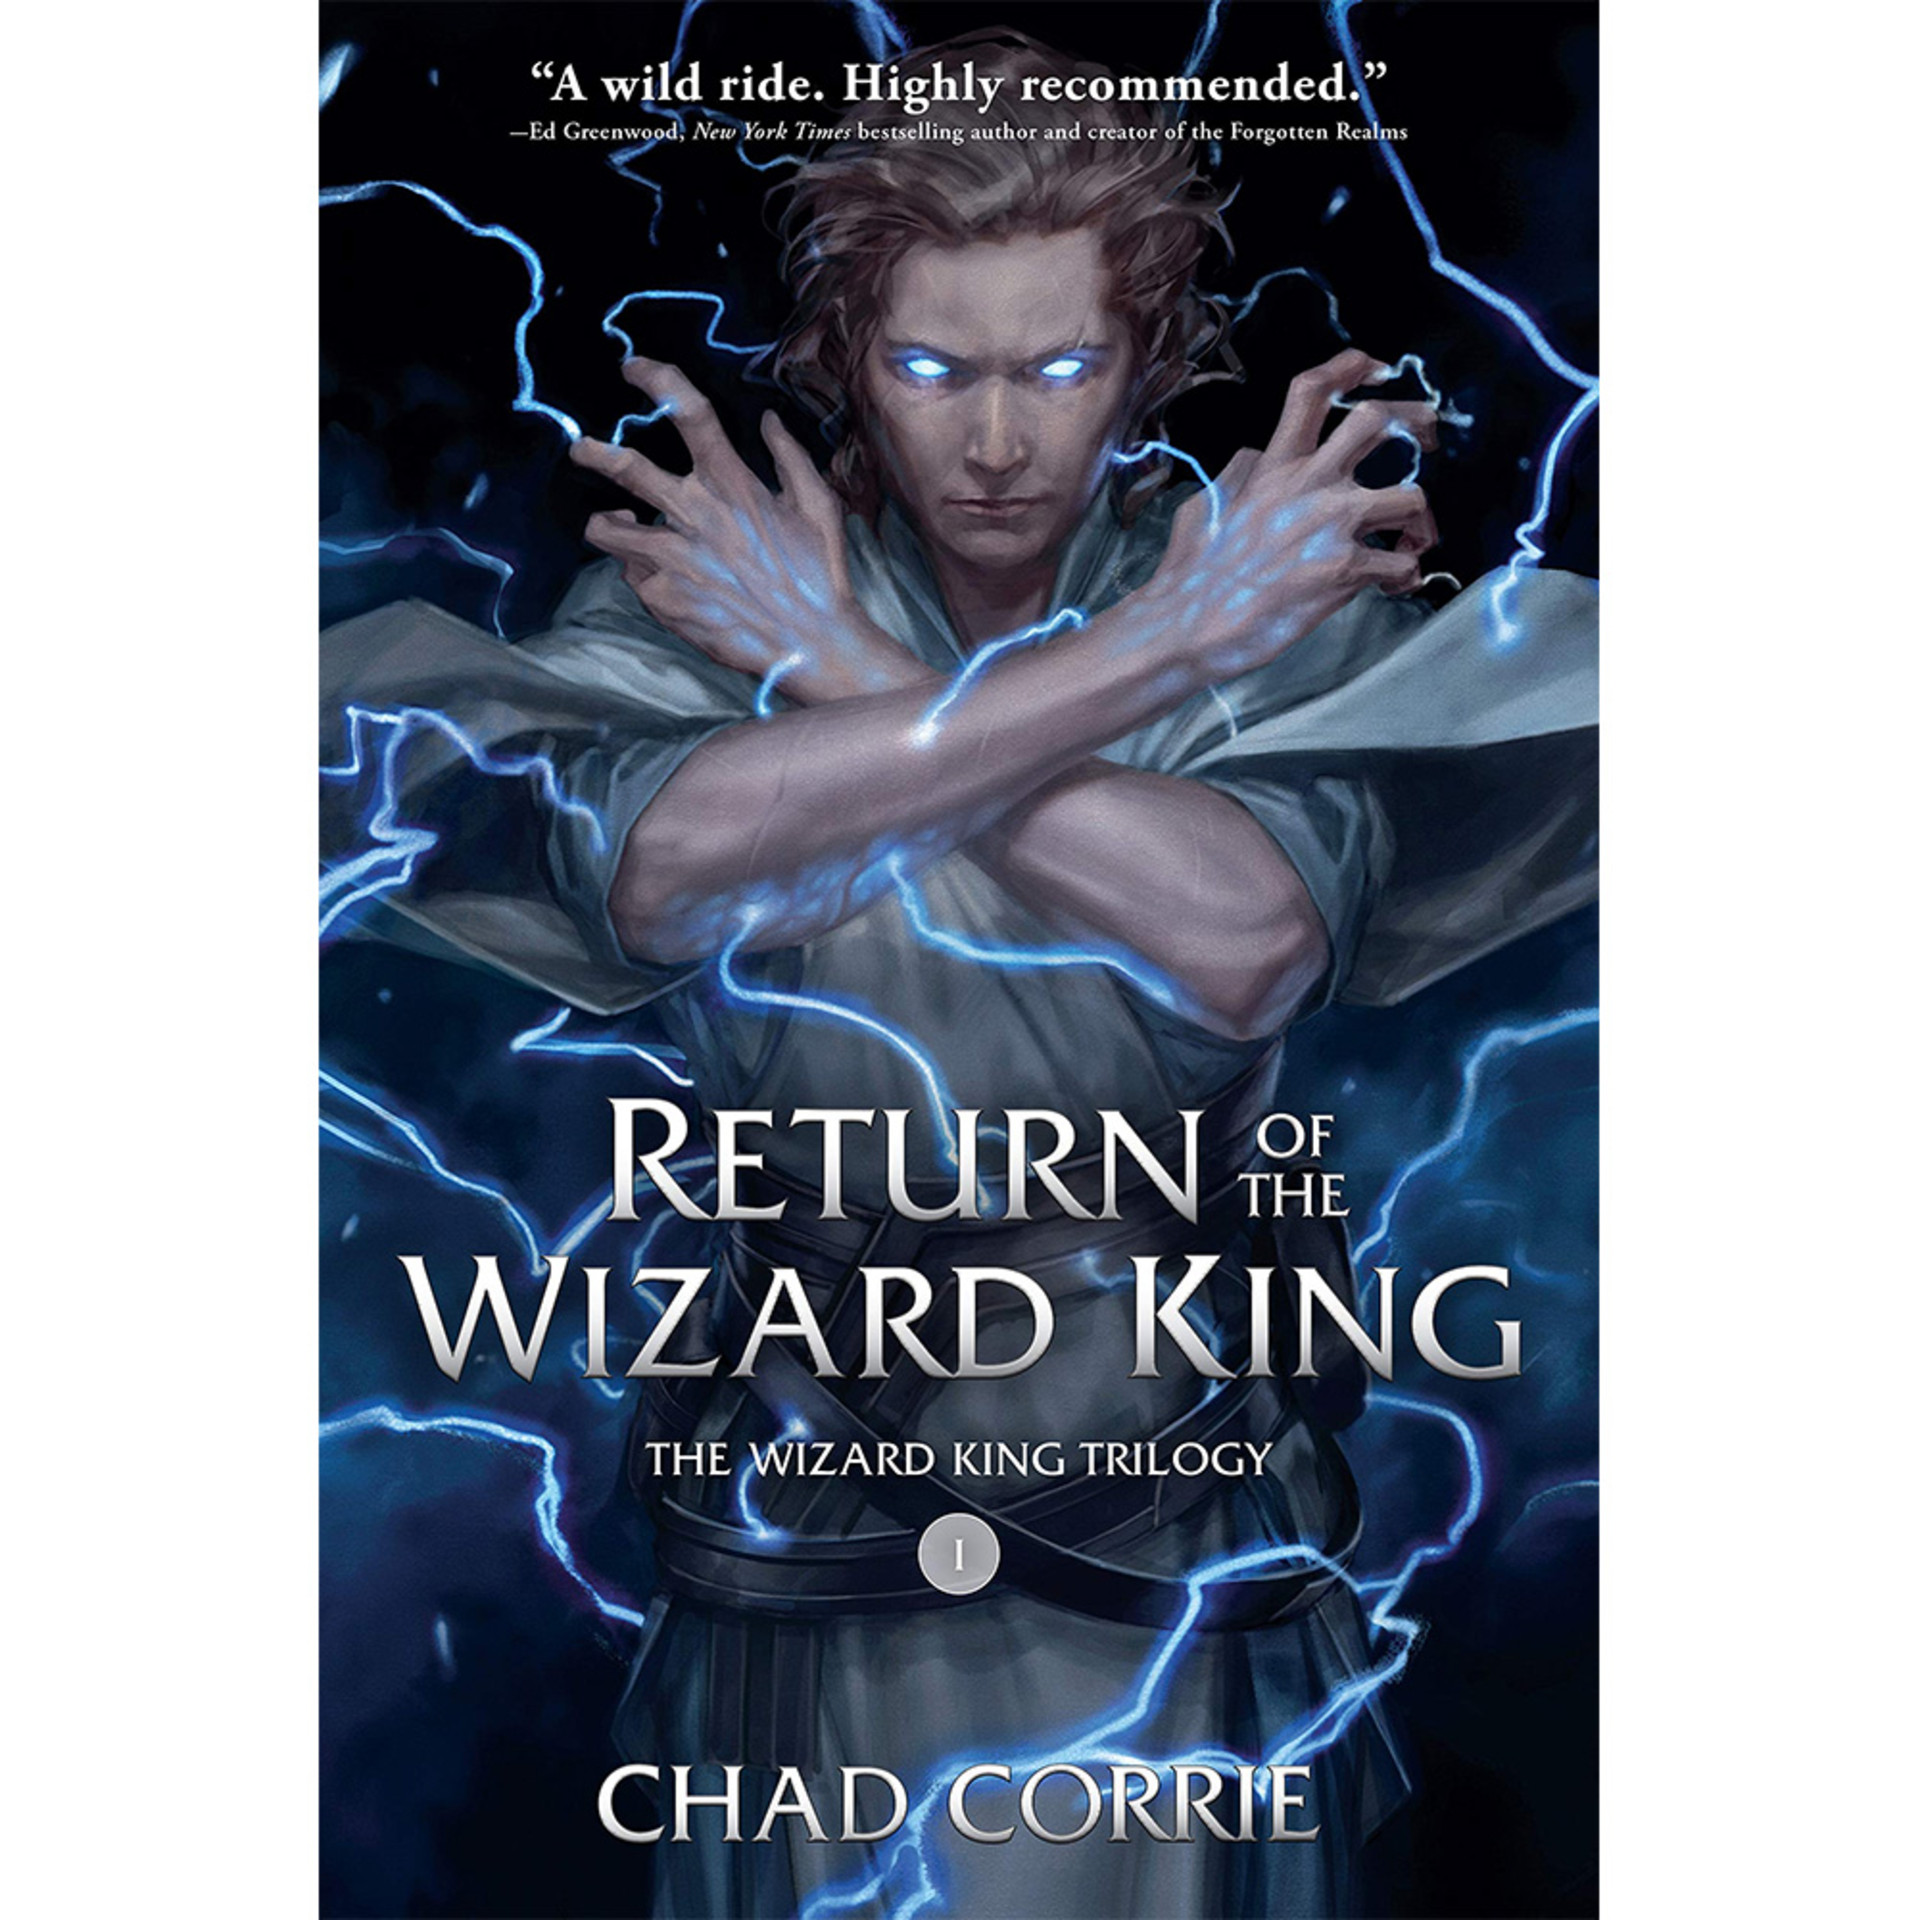 Return of the Wizard King by Chad Corrie